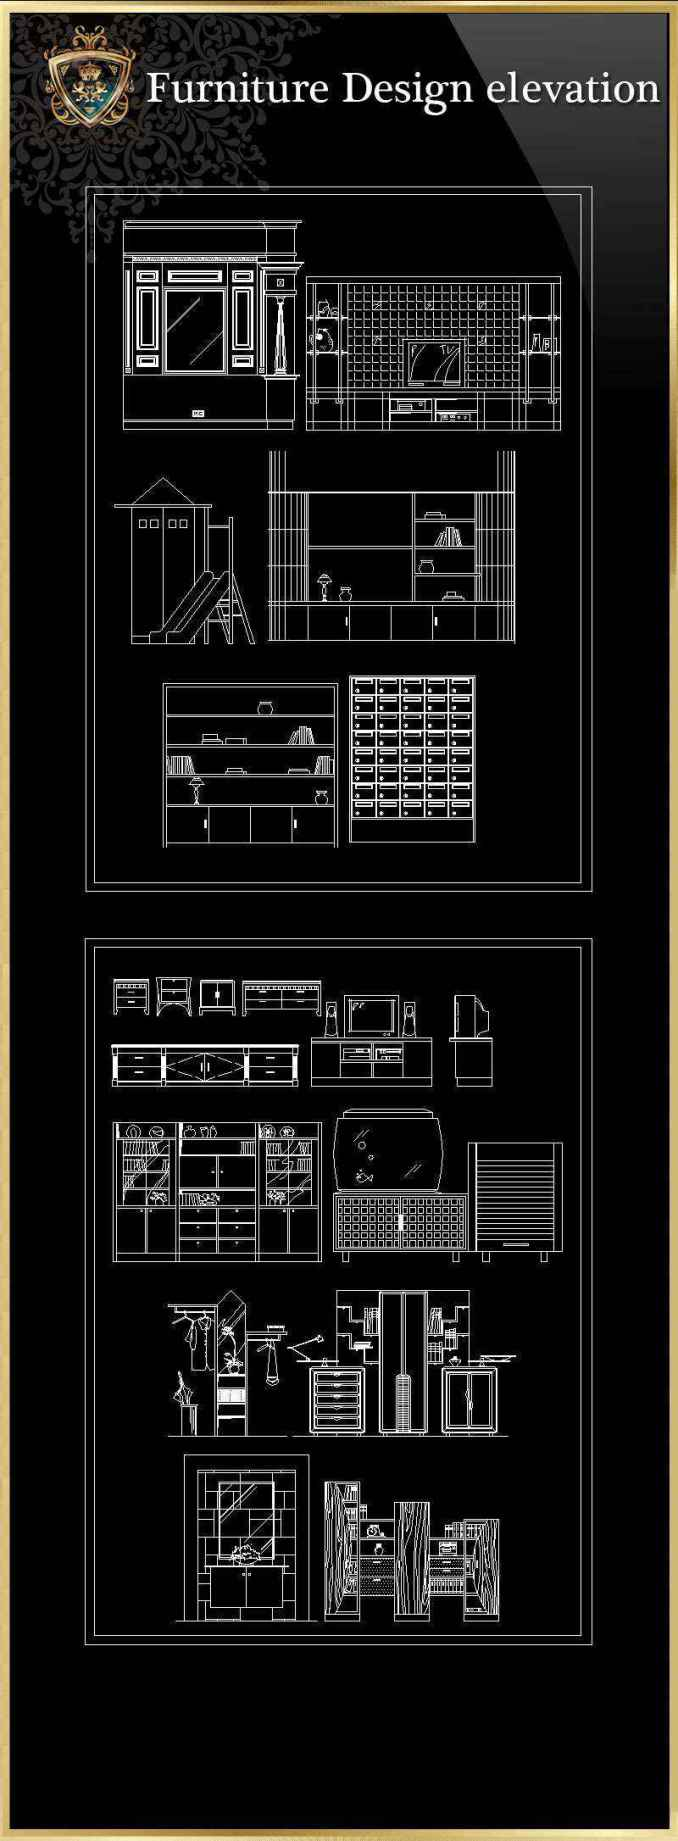 Autocad 3d House Design Software: ALL Furniture Design Elevation(All In One!!)